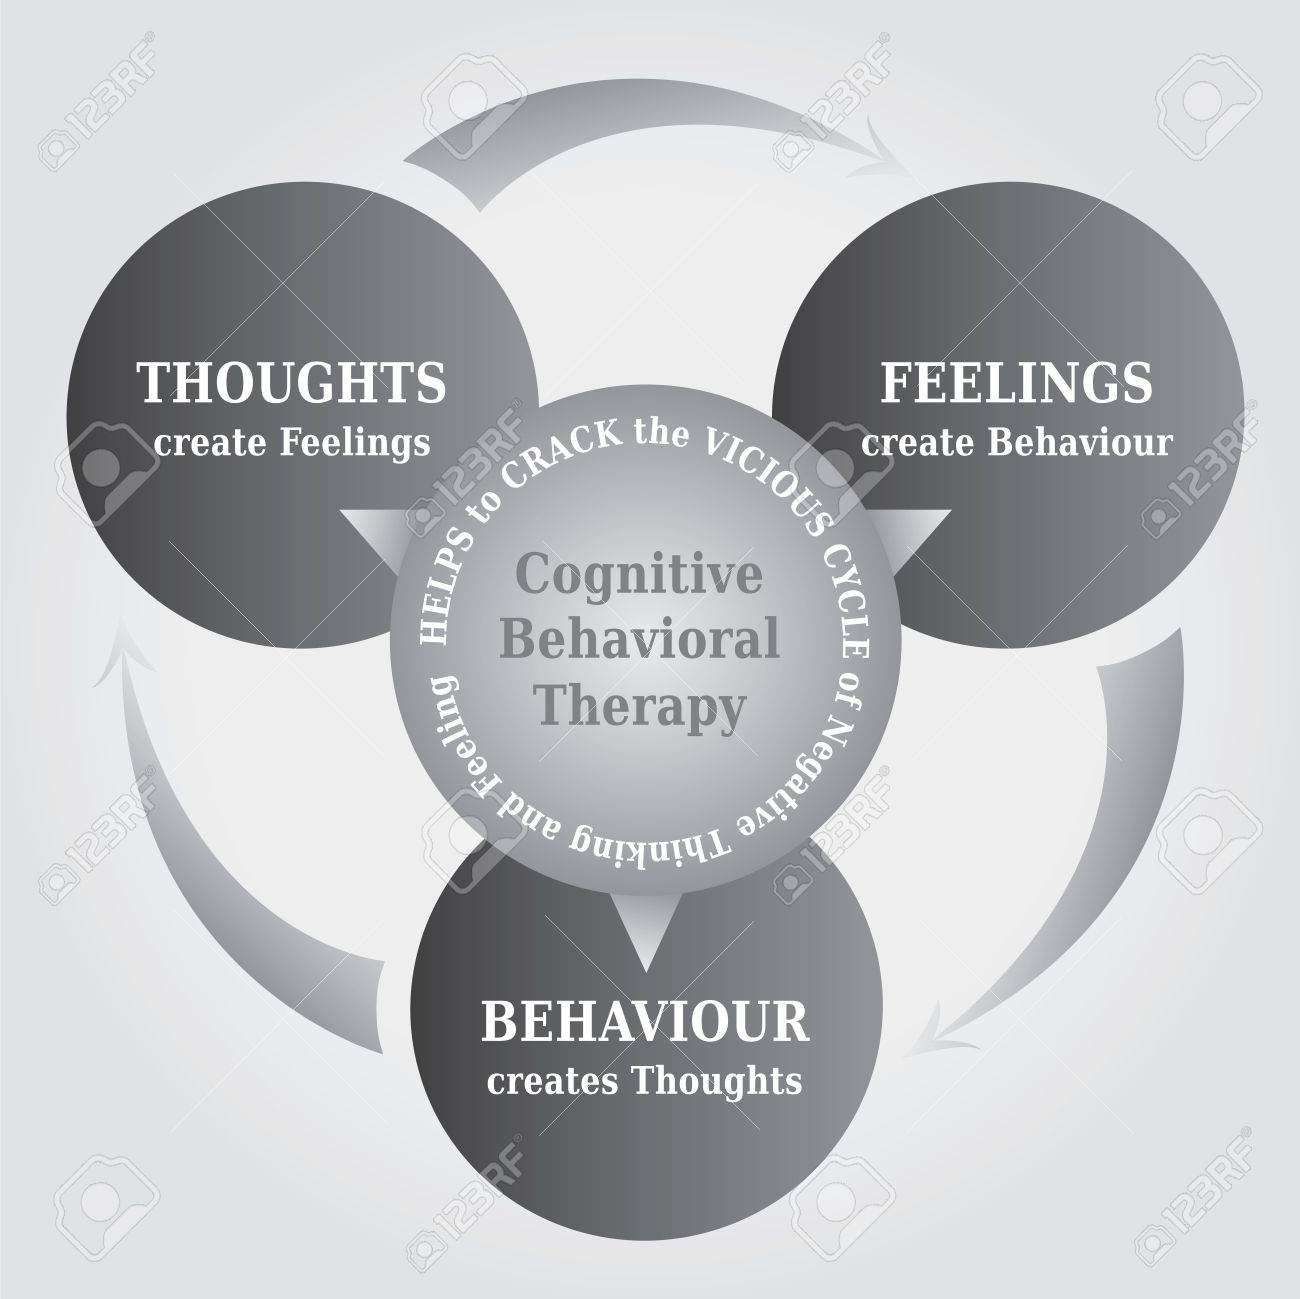 Cbt cognitive behavioral therapy cycle diagram with the concept cbt cognitive behavioral therapy cycle diagram with the concept that thoughts create reality ccuart Choice Image